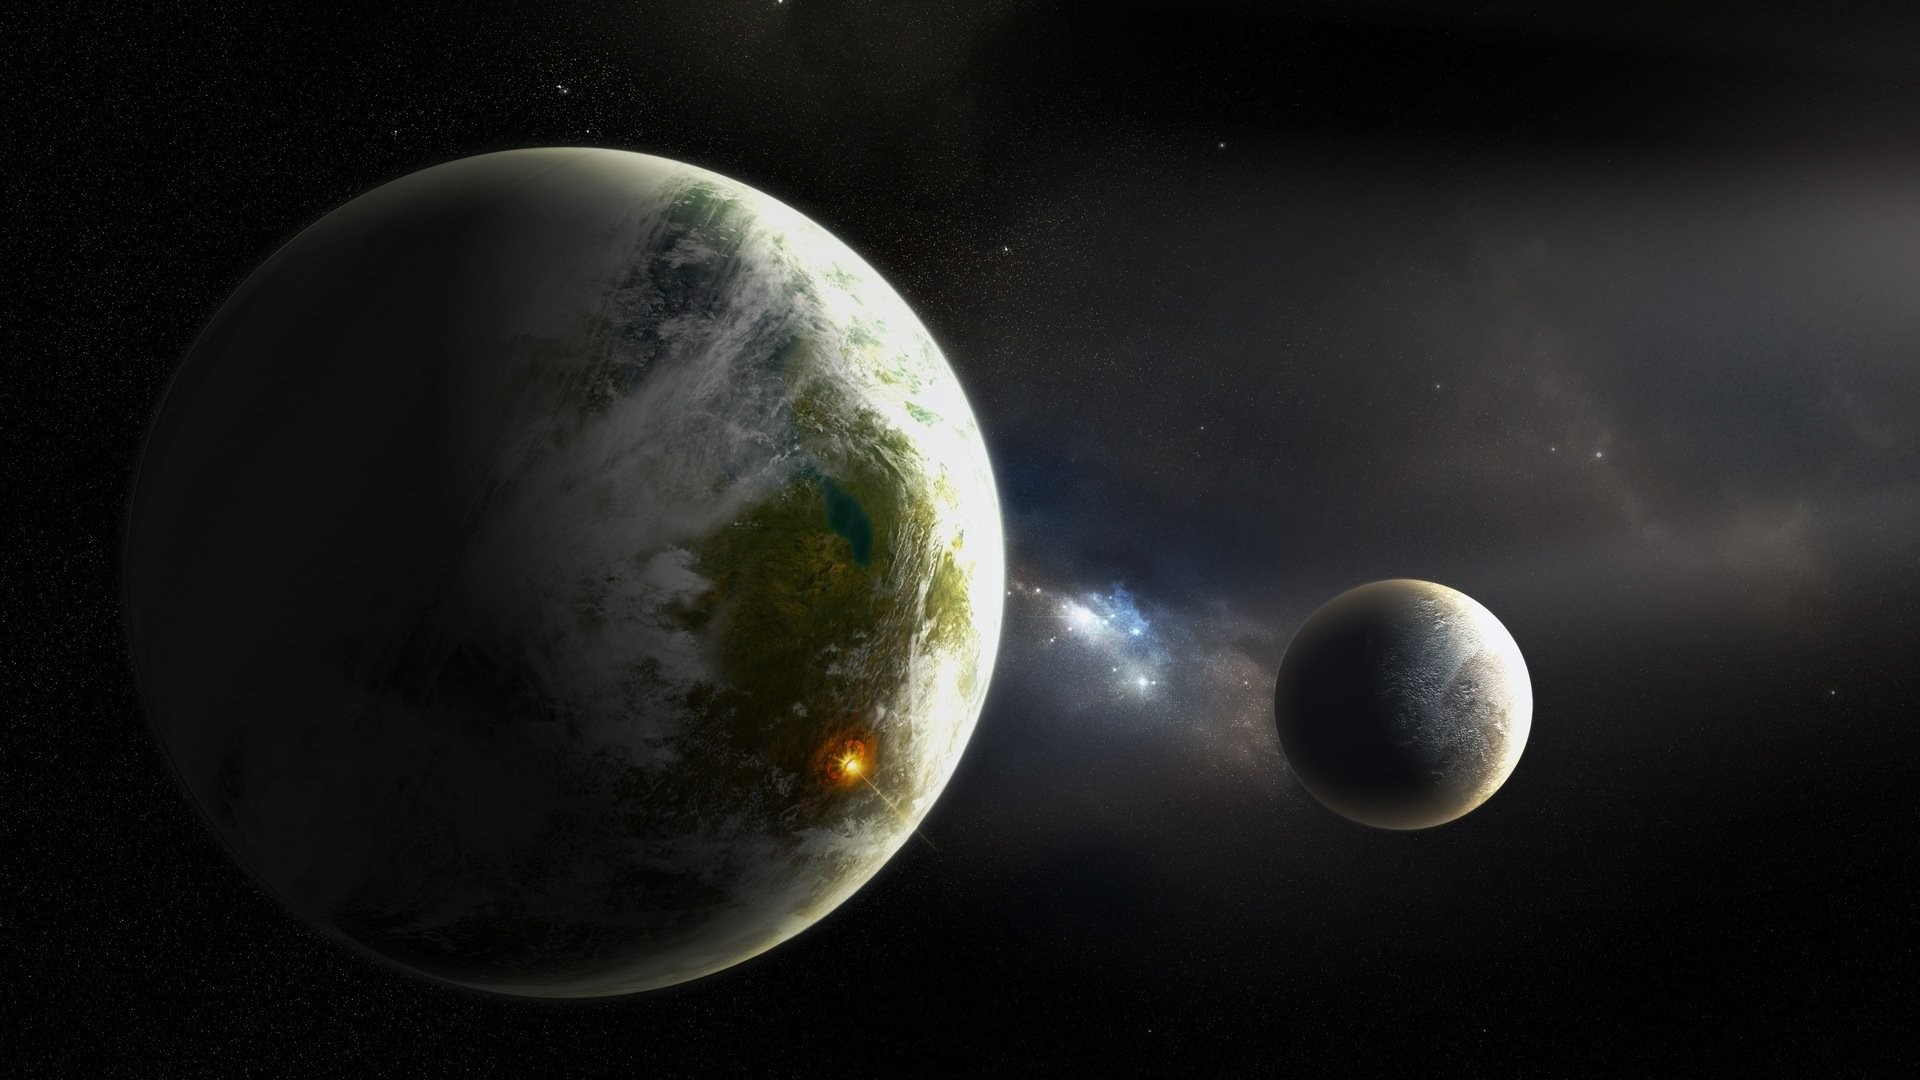 1920x1080 ... Backgrounds space, Planet, Moon, Earth, Awesome Face Wallpapers HD /  Desktop .